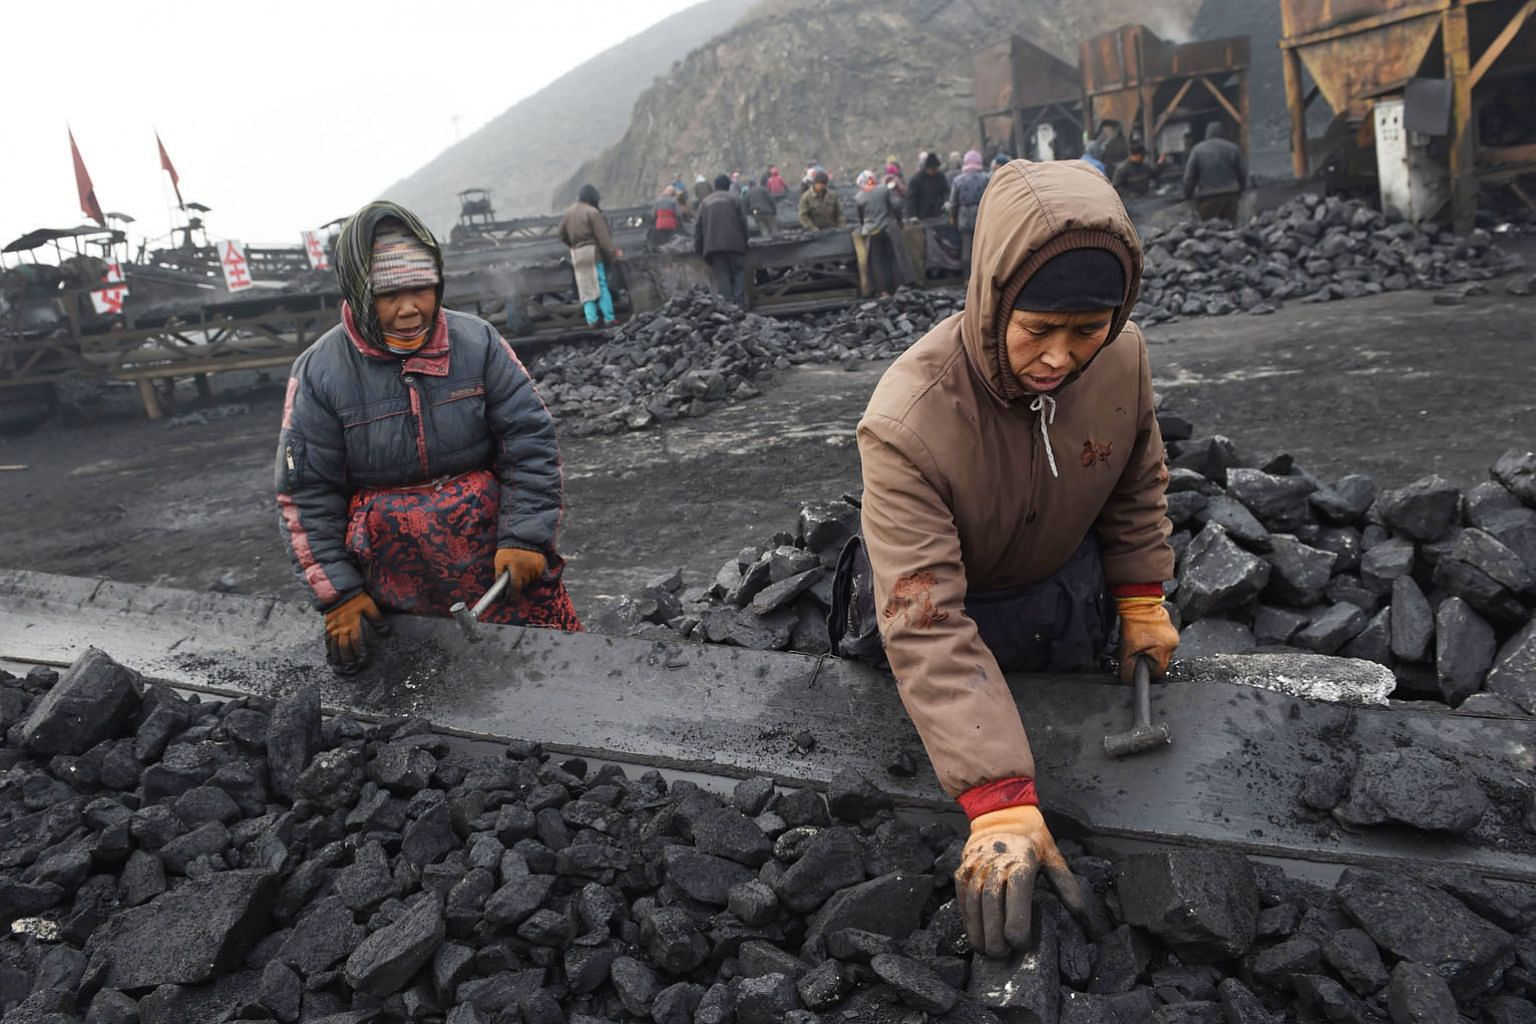 Workers sorting coal near a mine in Datong, in China's northern Shanxi province, in 2015. China has pledged to begin decreasing its use of coal by 2030, among other measures, but the writer says it can do more such as stopping its financing and build